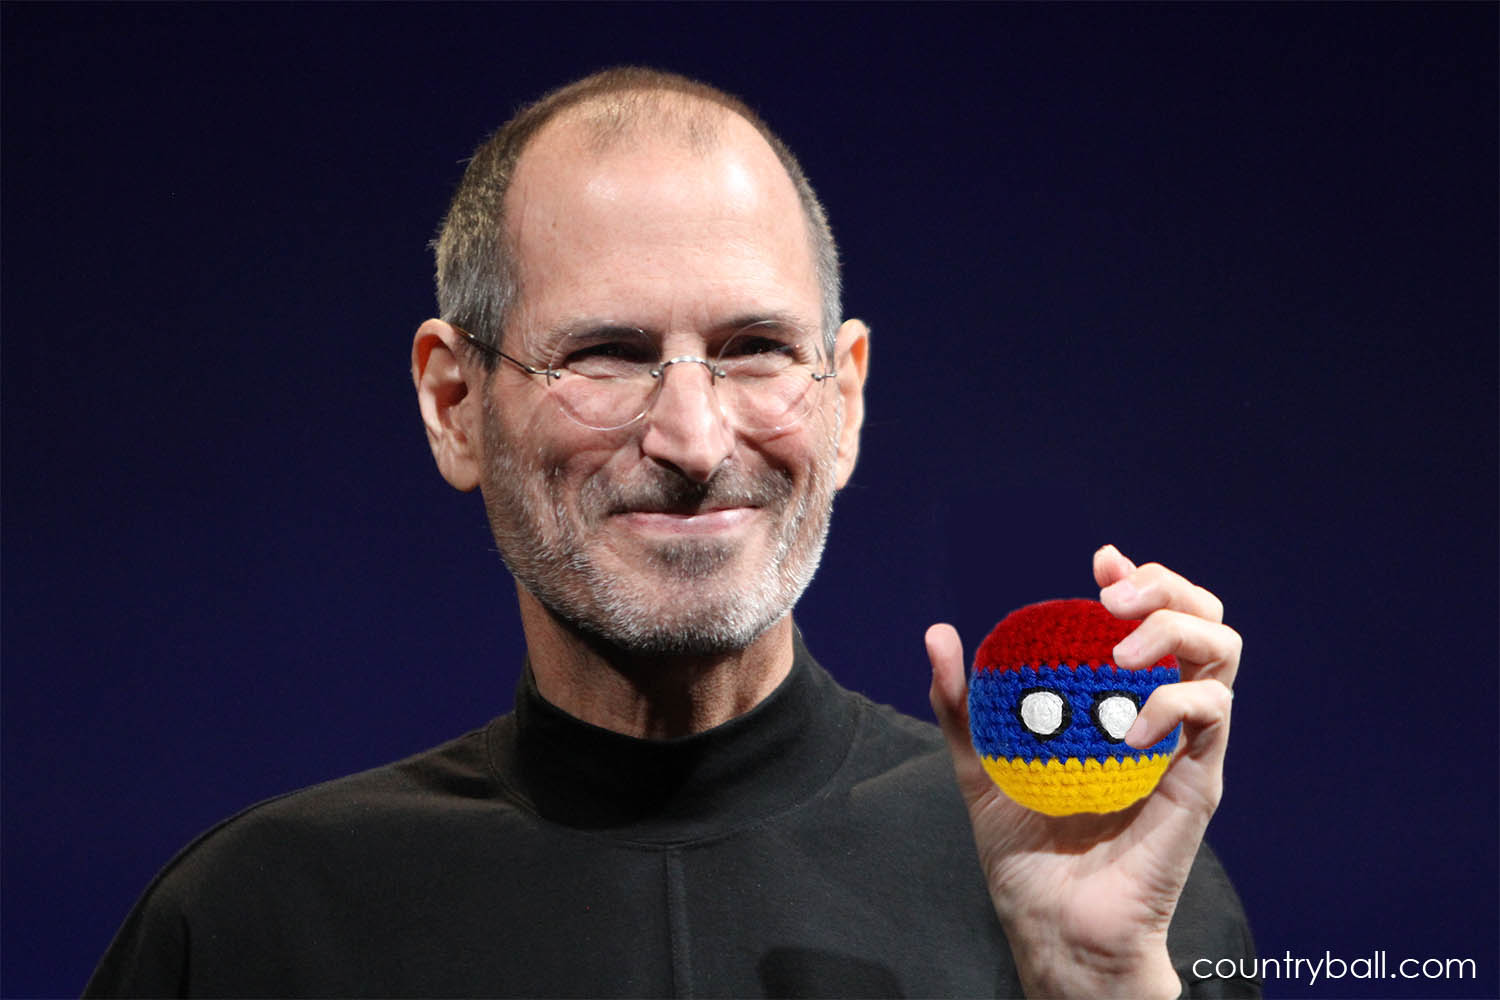 Steve Jobs with his Armeniaball